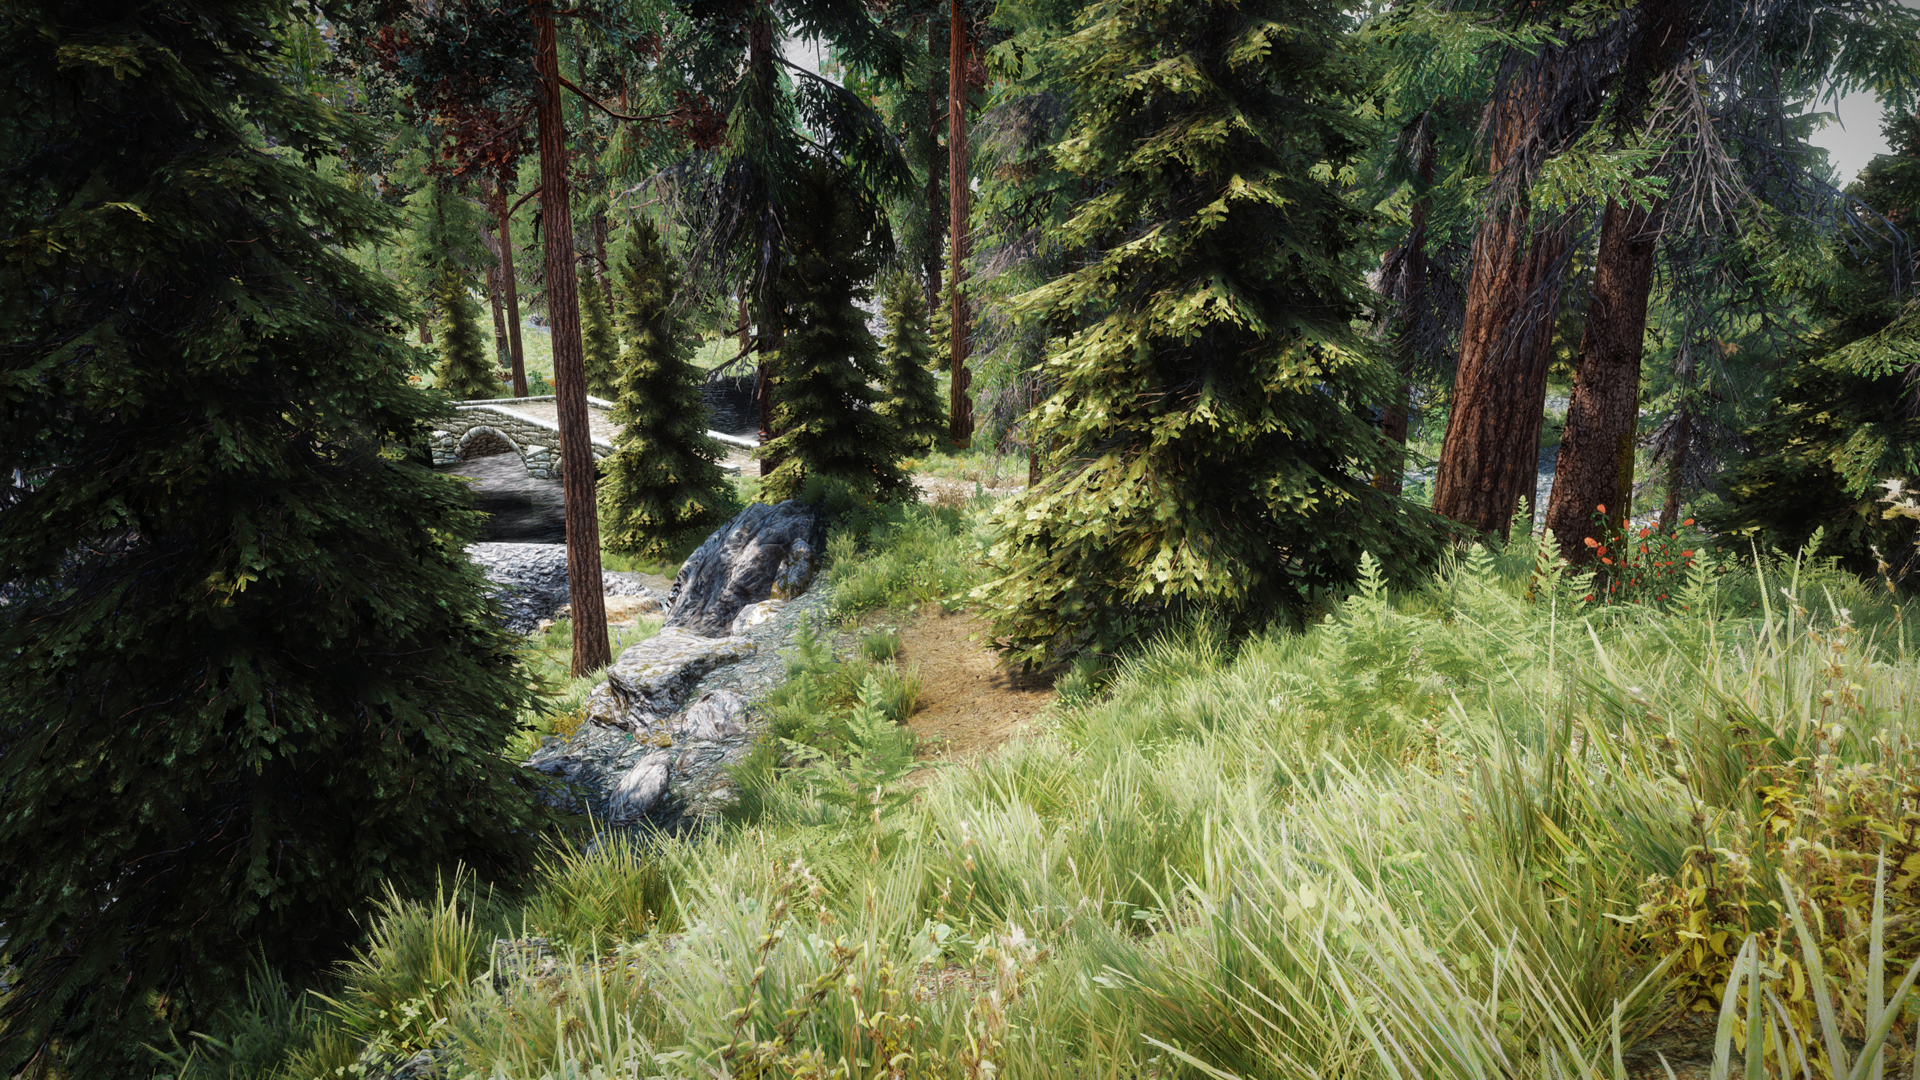 skyrim enb reshade how to use